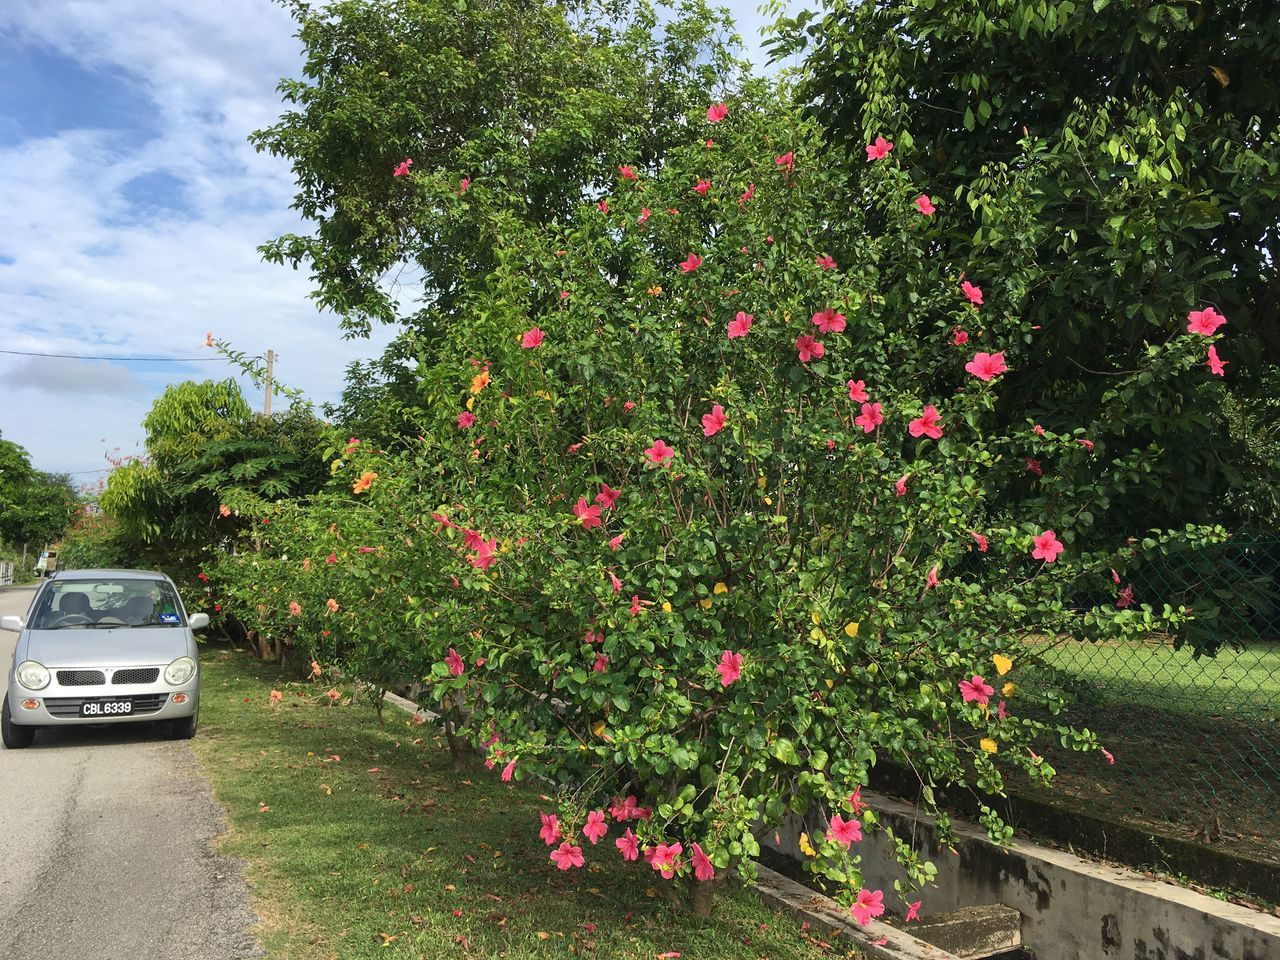 Tree Growth Flower Transportation Nature Plant Land Vehicle No People Day Outdoors Beauty In Nature Fragility Freshness Sky Pahang, Malaysia Flowers Hibiscus Landscape Street Tranquility Tranquil Scene Beauty In Nature Green Color Malaysia Nature